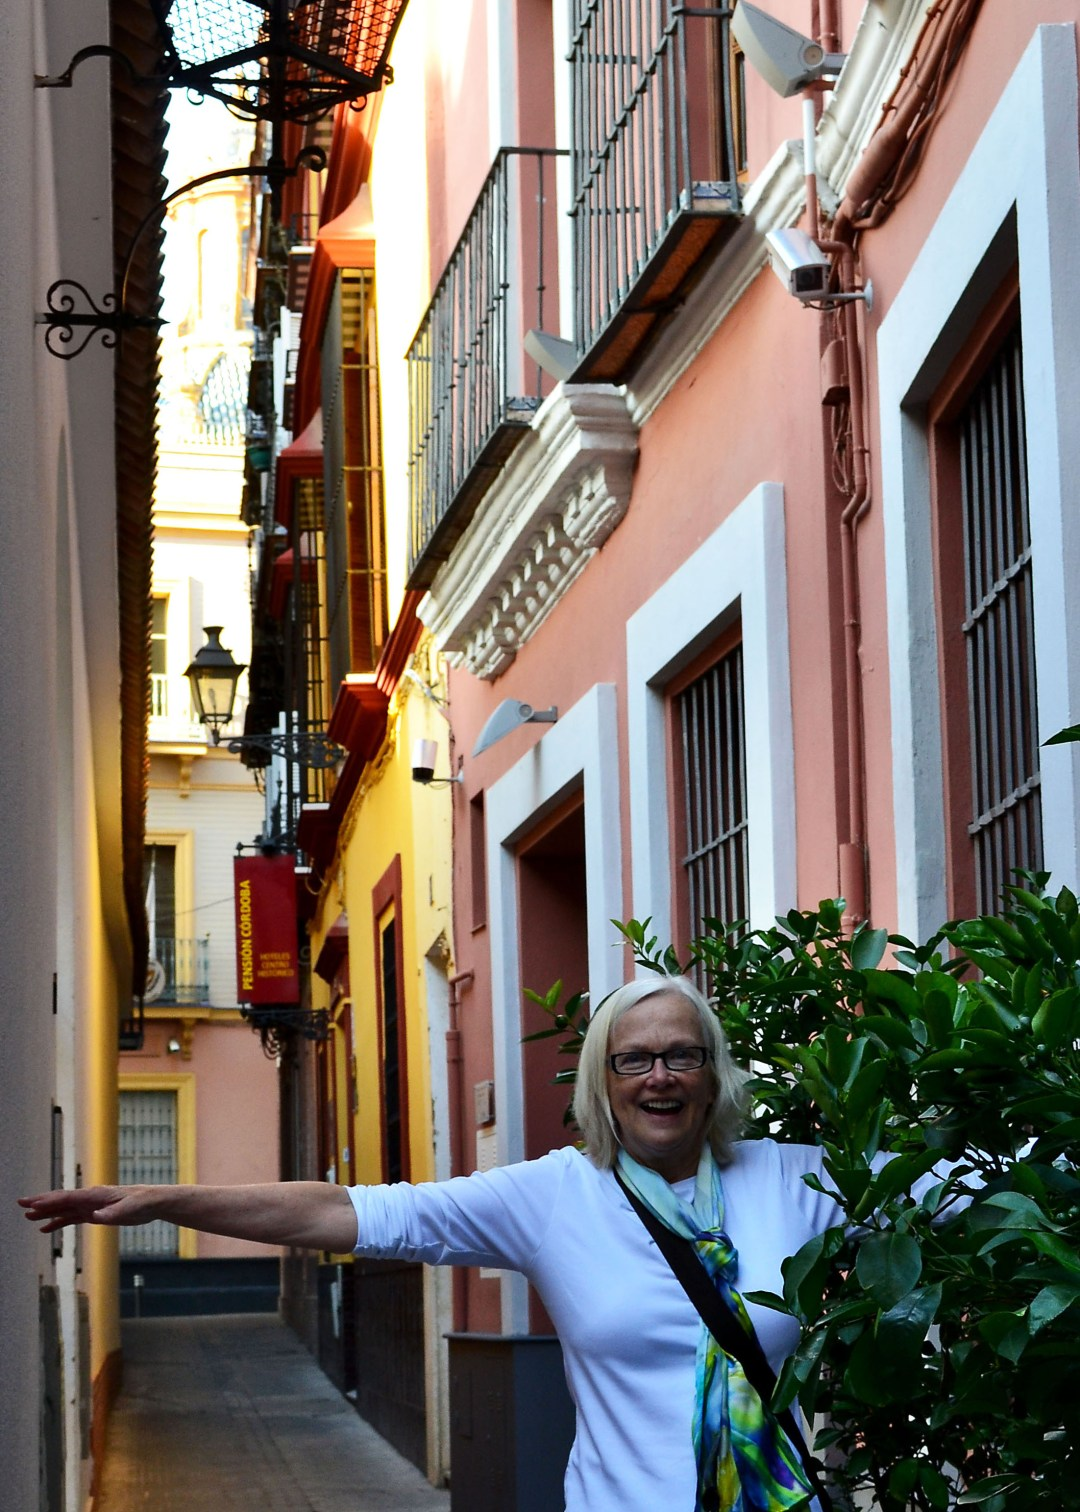 Narrow streets in Seville